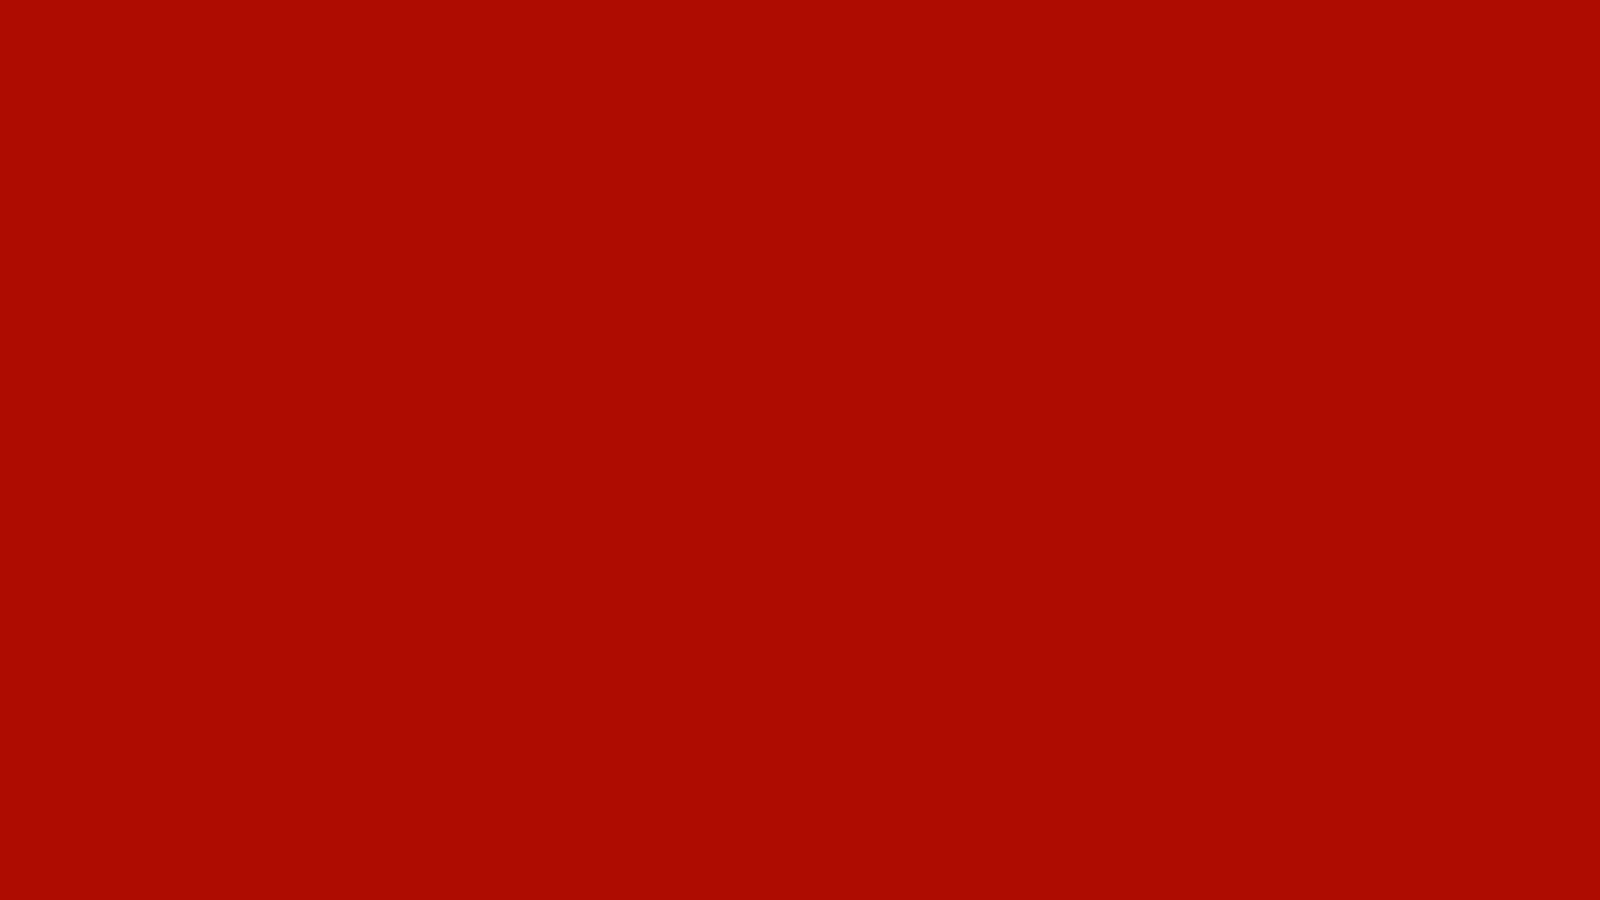 1600x900 Mordant Red 19 Solid Color Background